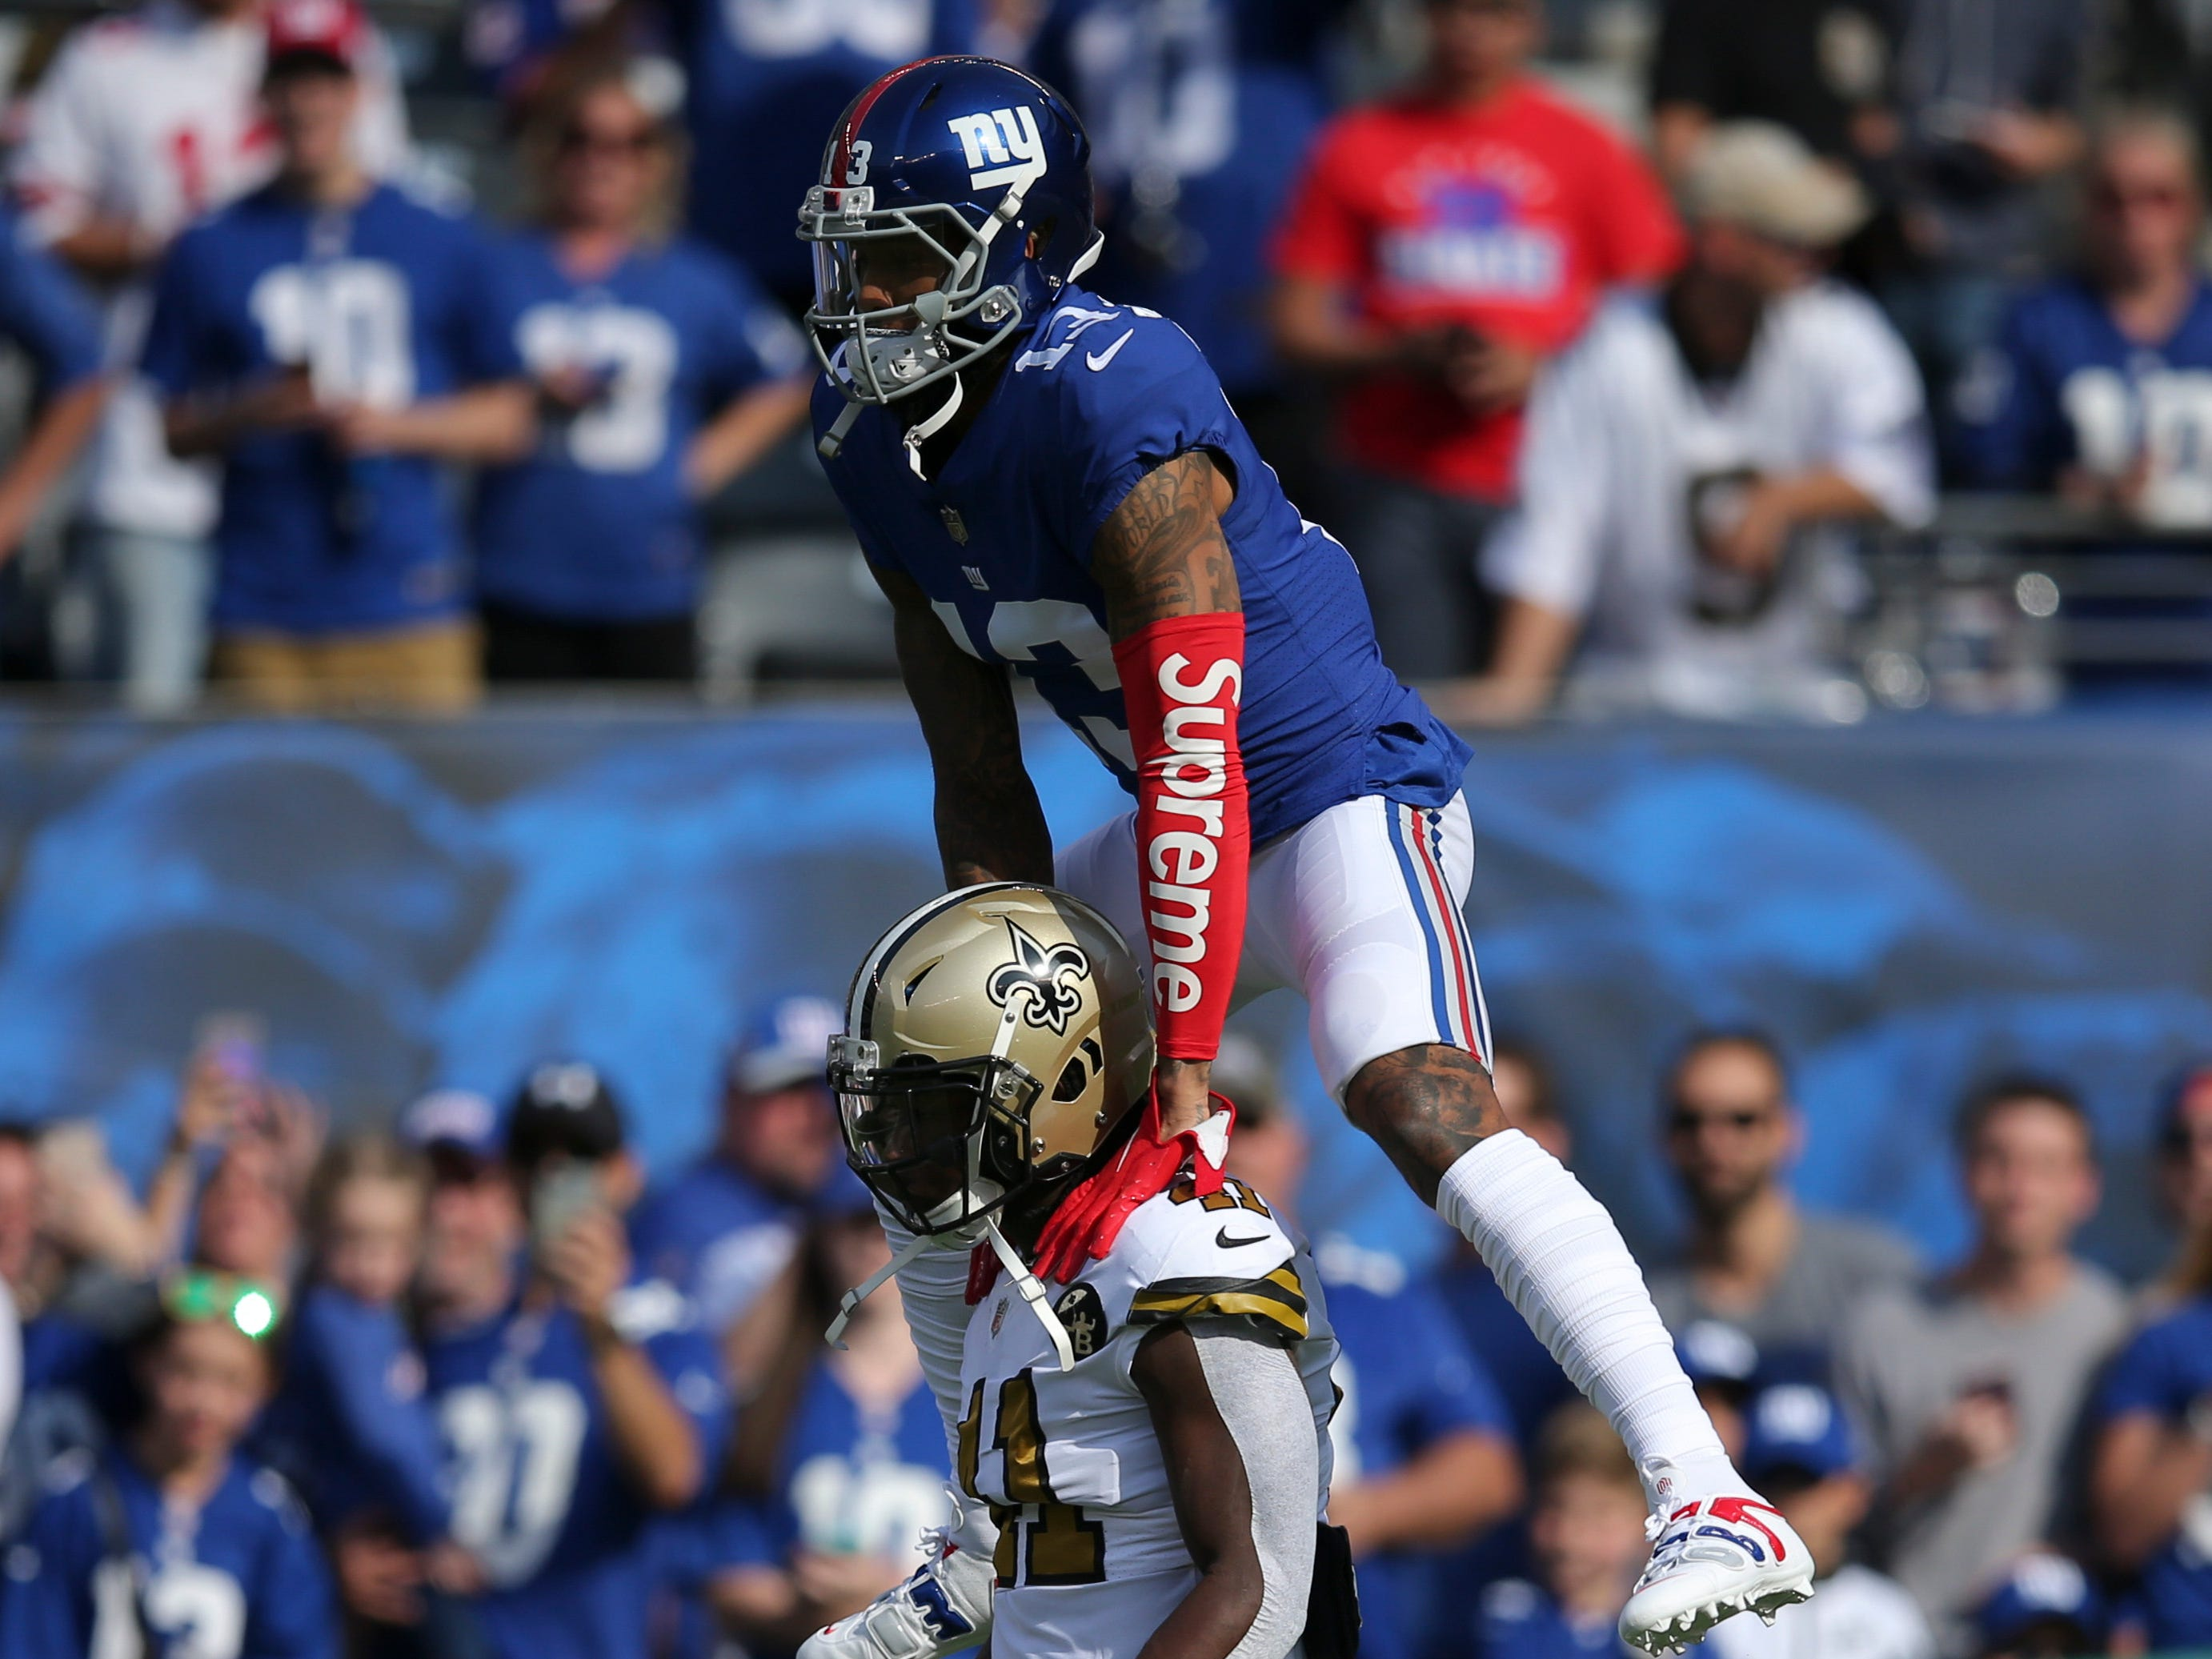 New York Giants wide receiver Odell Beckham Jr. leaps over New Orleans Saints running back Alvin Kamara before a game at MetLife Stadium.